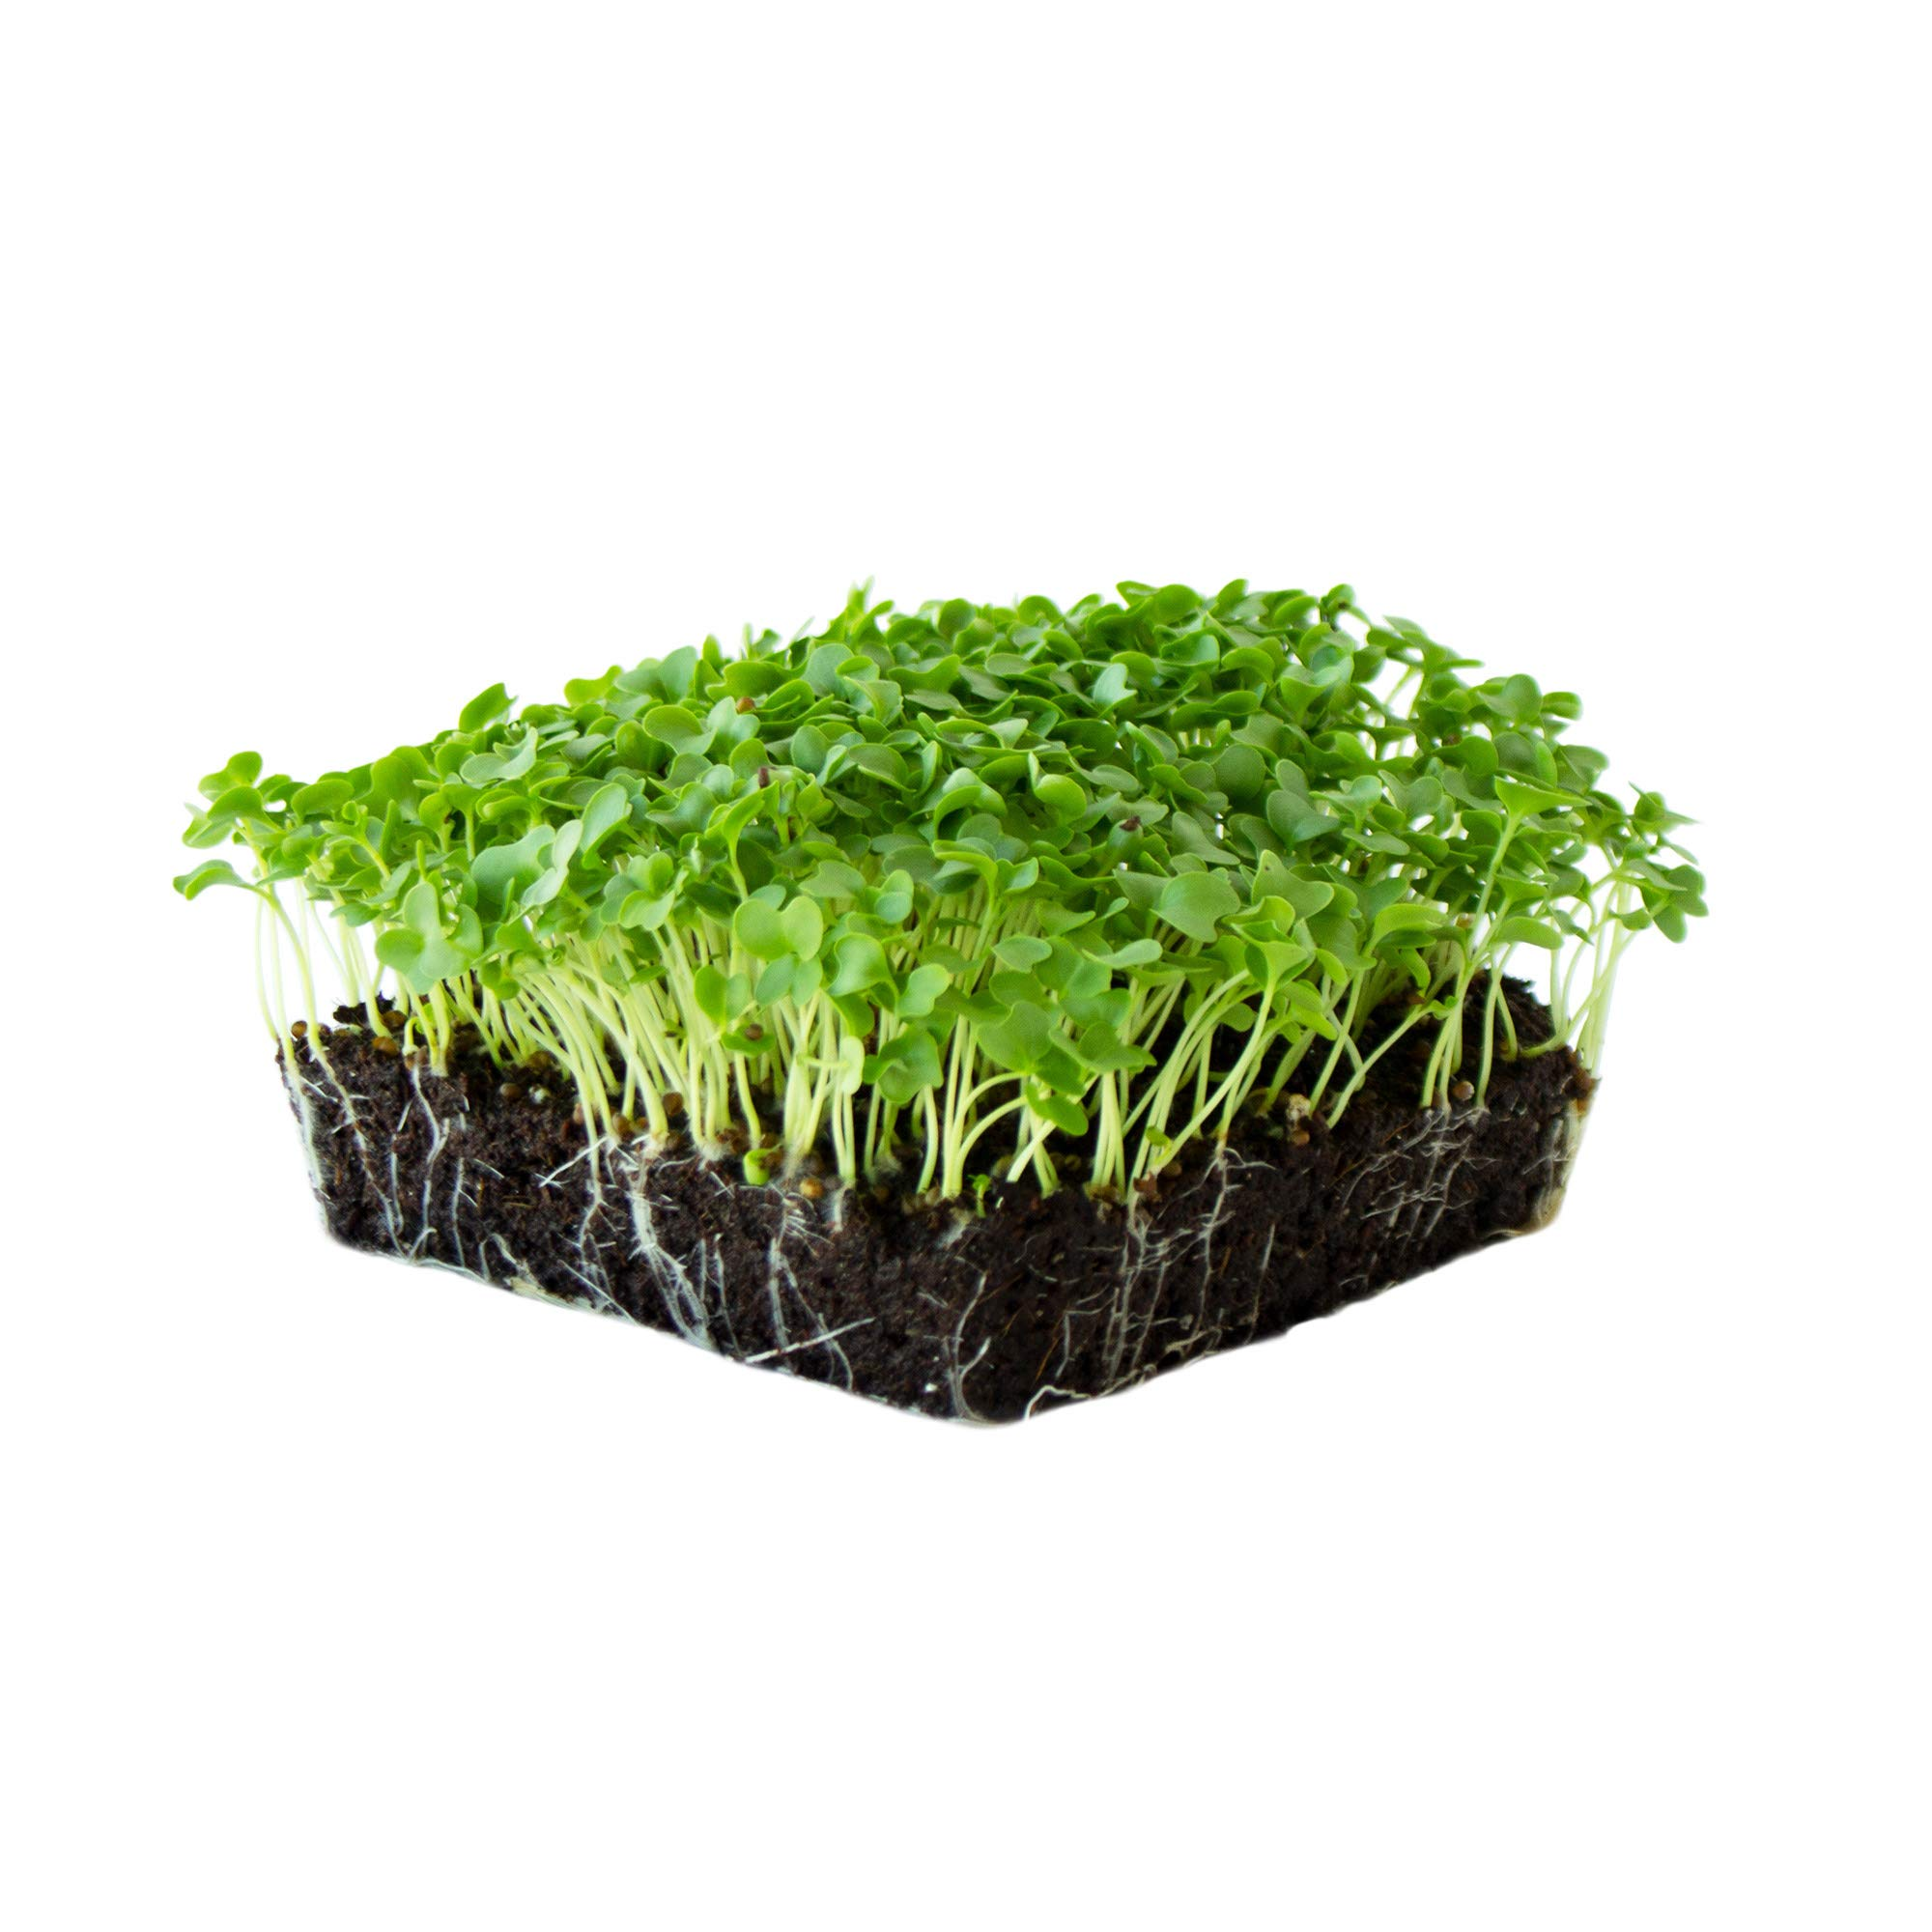 Organic Kale Garden Seeds - Vates Blue Scotch Curled - 5 Lb - Non-GMO, Heirloom- Vegetable Gardening, Farm & Microgreens by Mountain Valley Seed Company